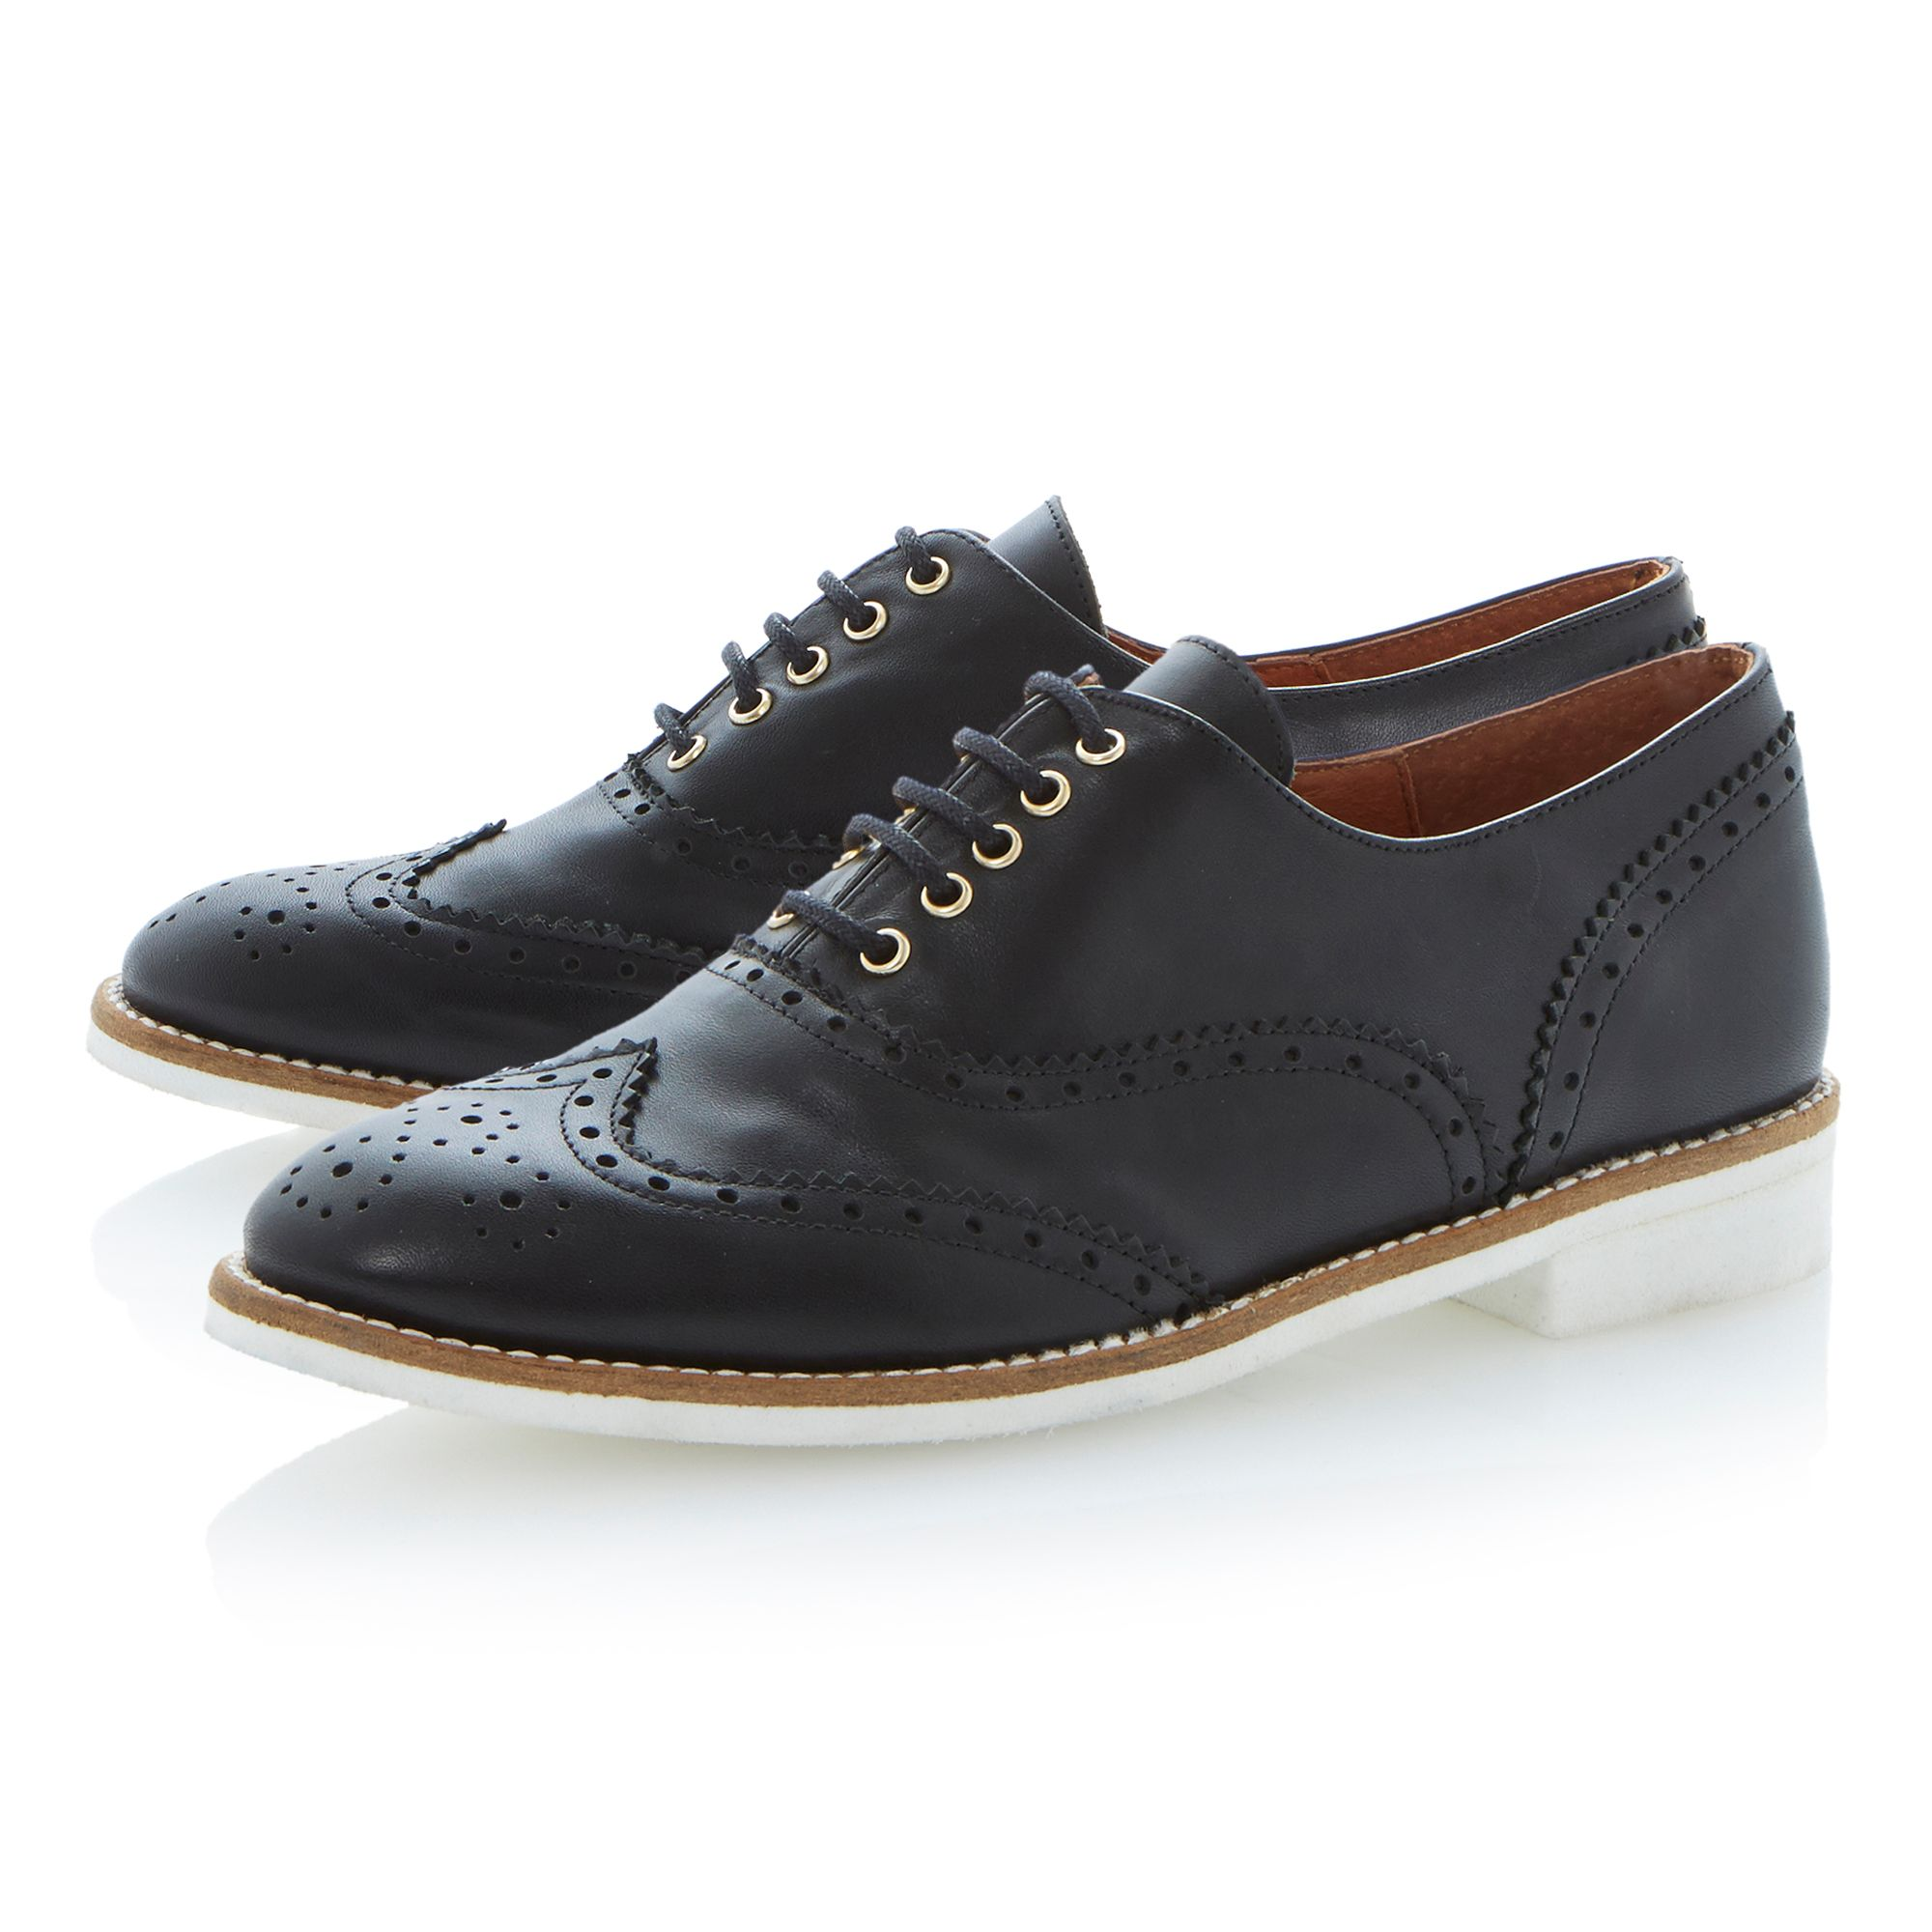 Leopold round toe block heel brogue shoes